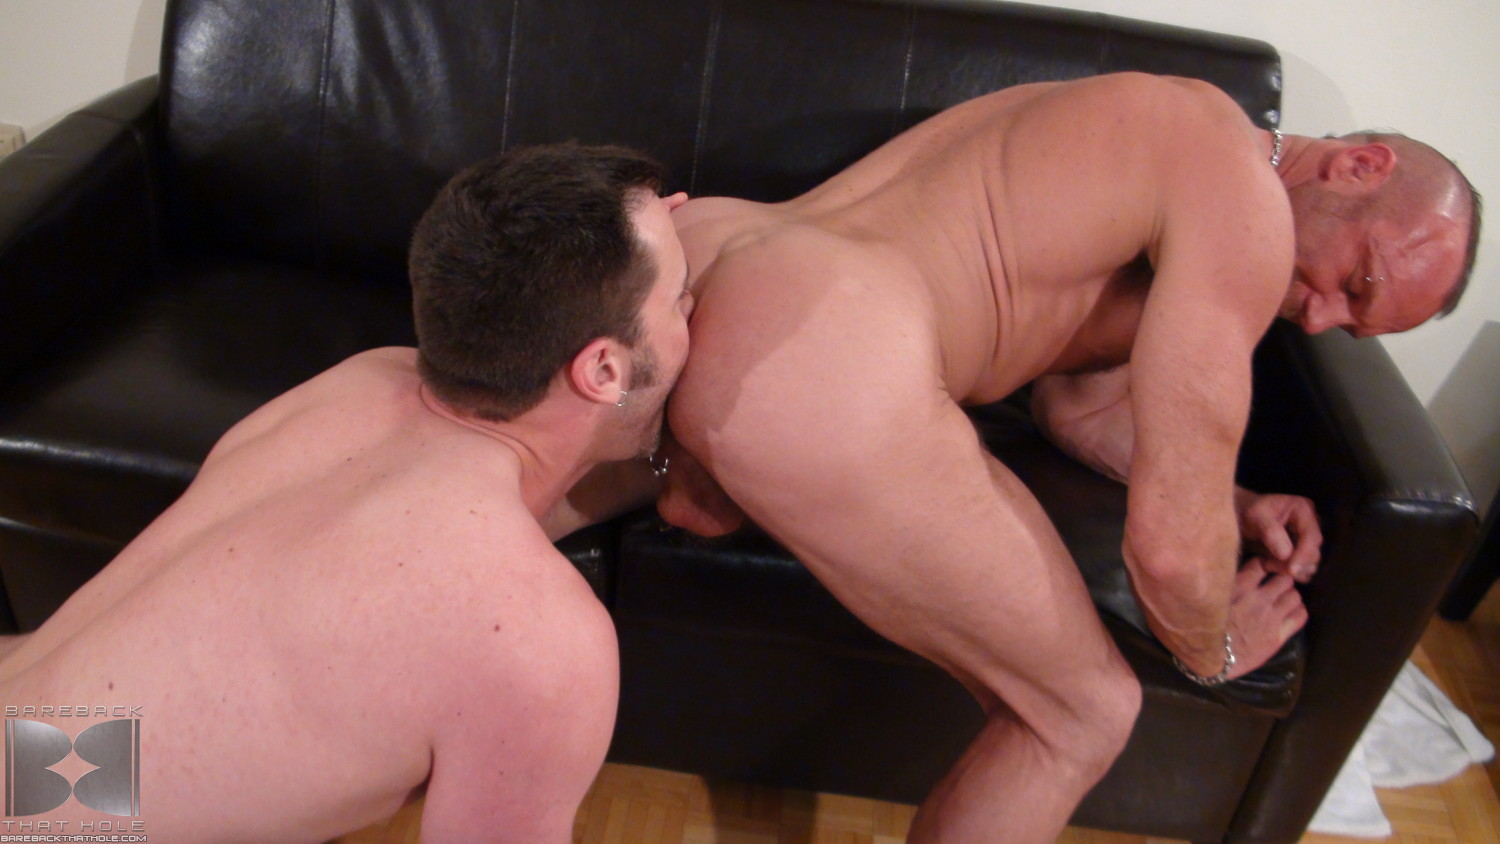 17_20 Bareback That Hole: Anthony Todd and Chad Brock